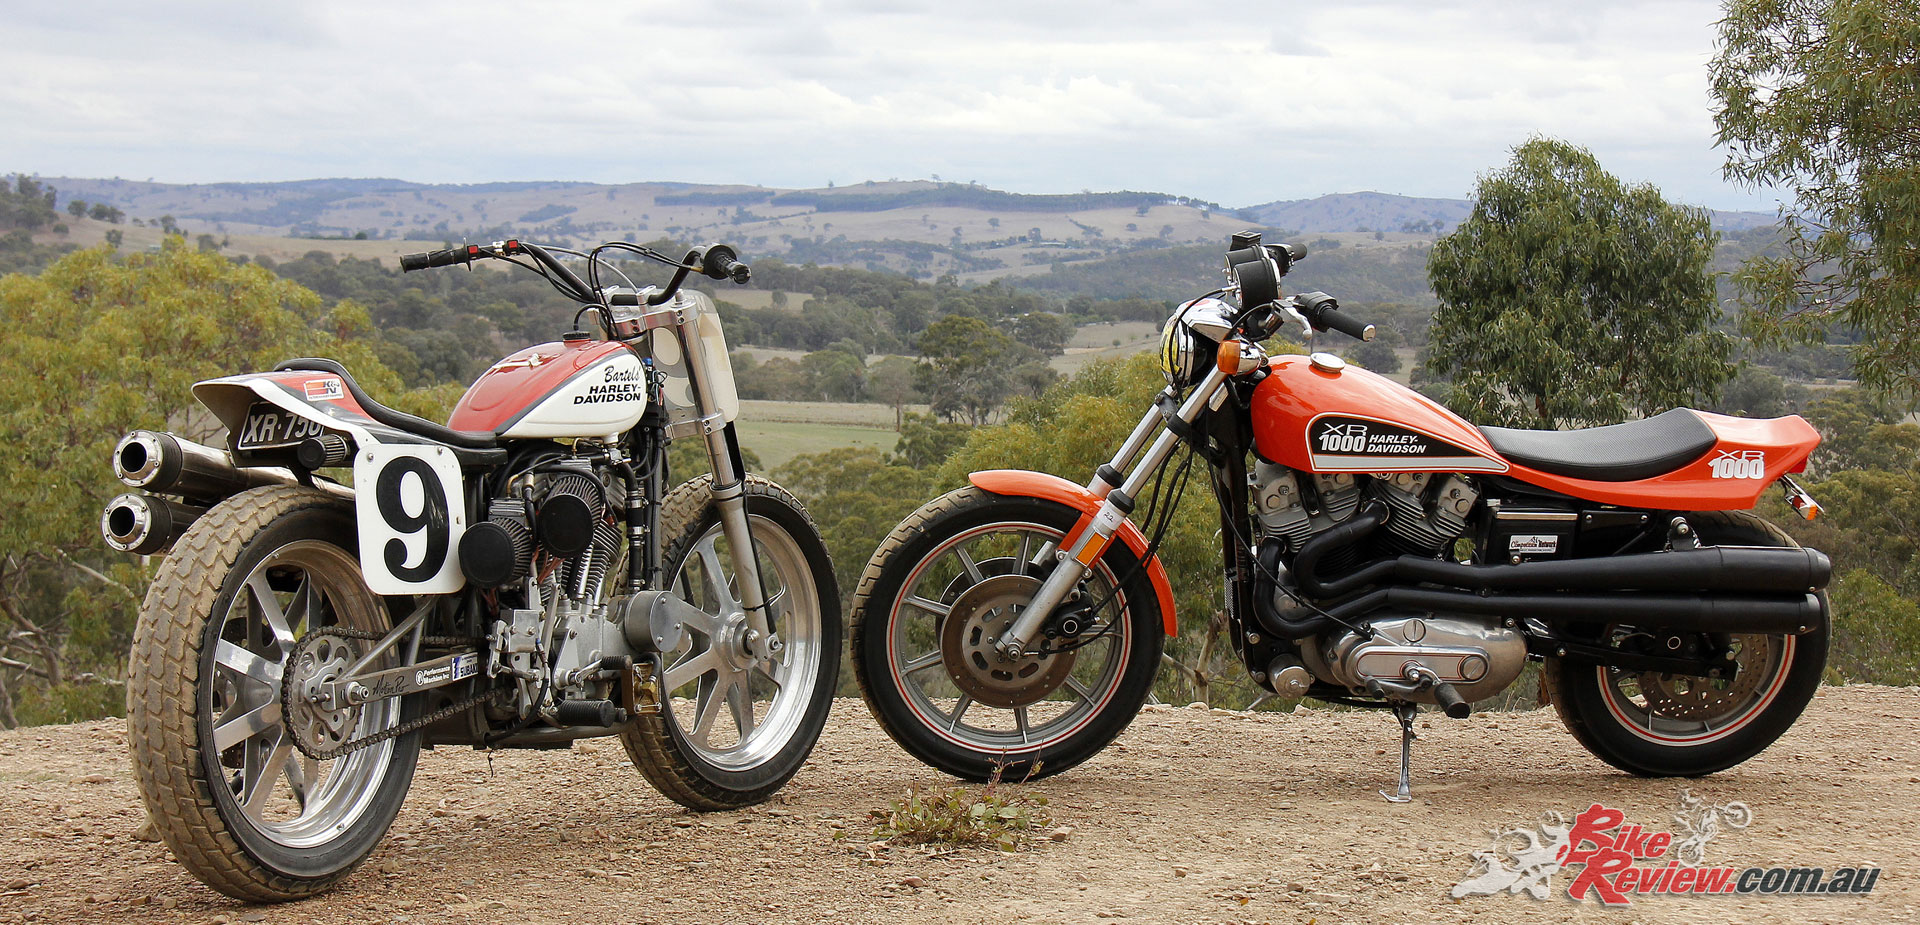 Custom: Harley XR 1000 & XR 750 Flat Tracker - Bike Review